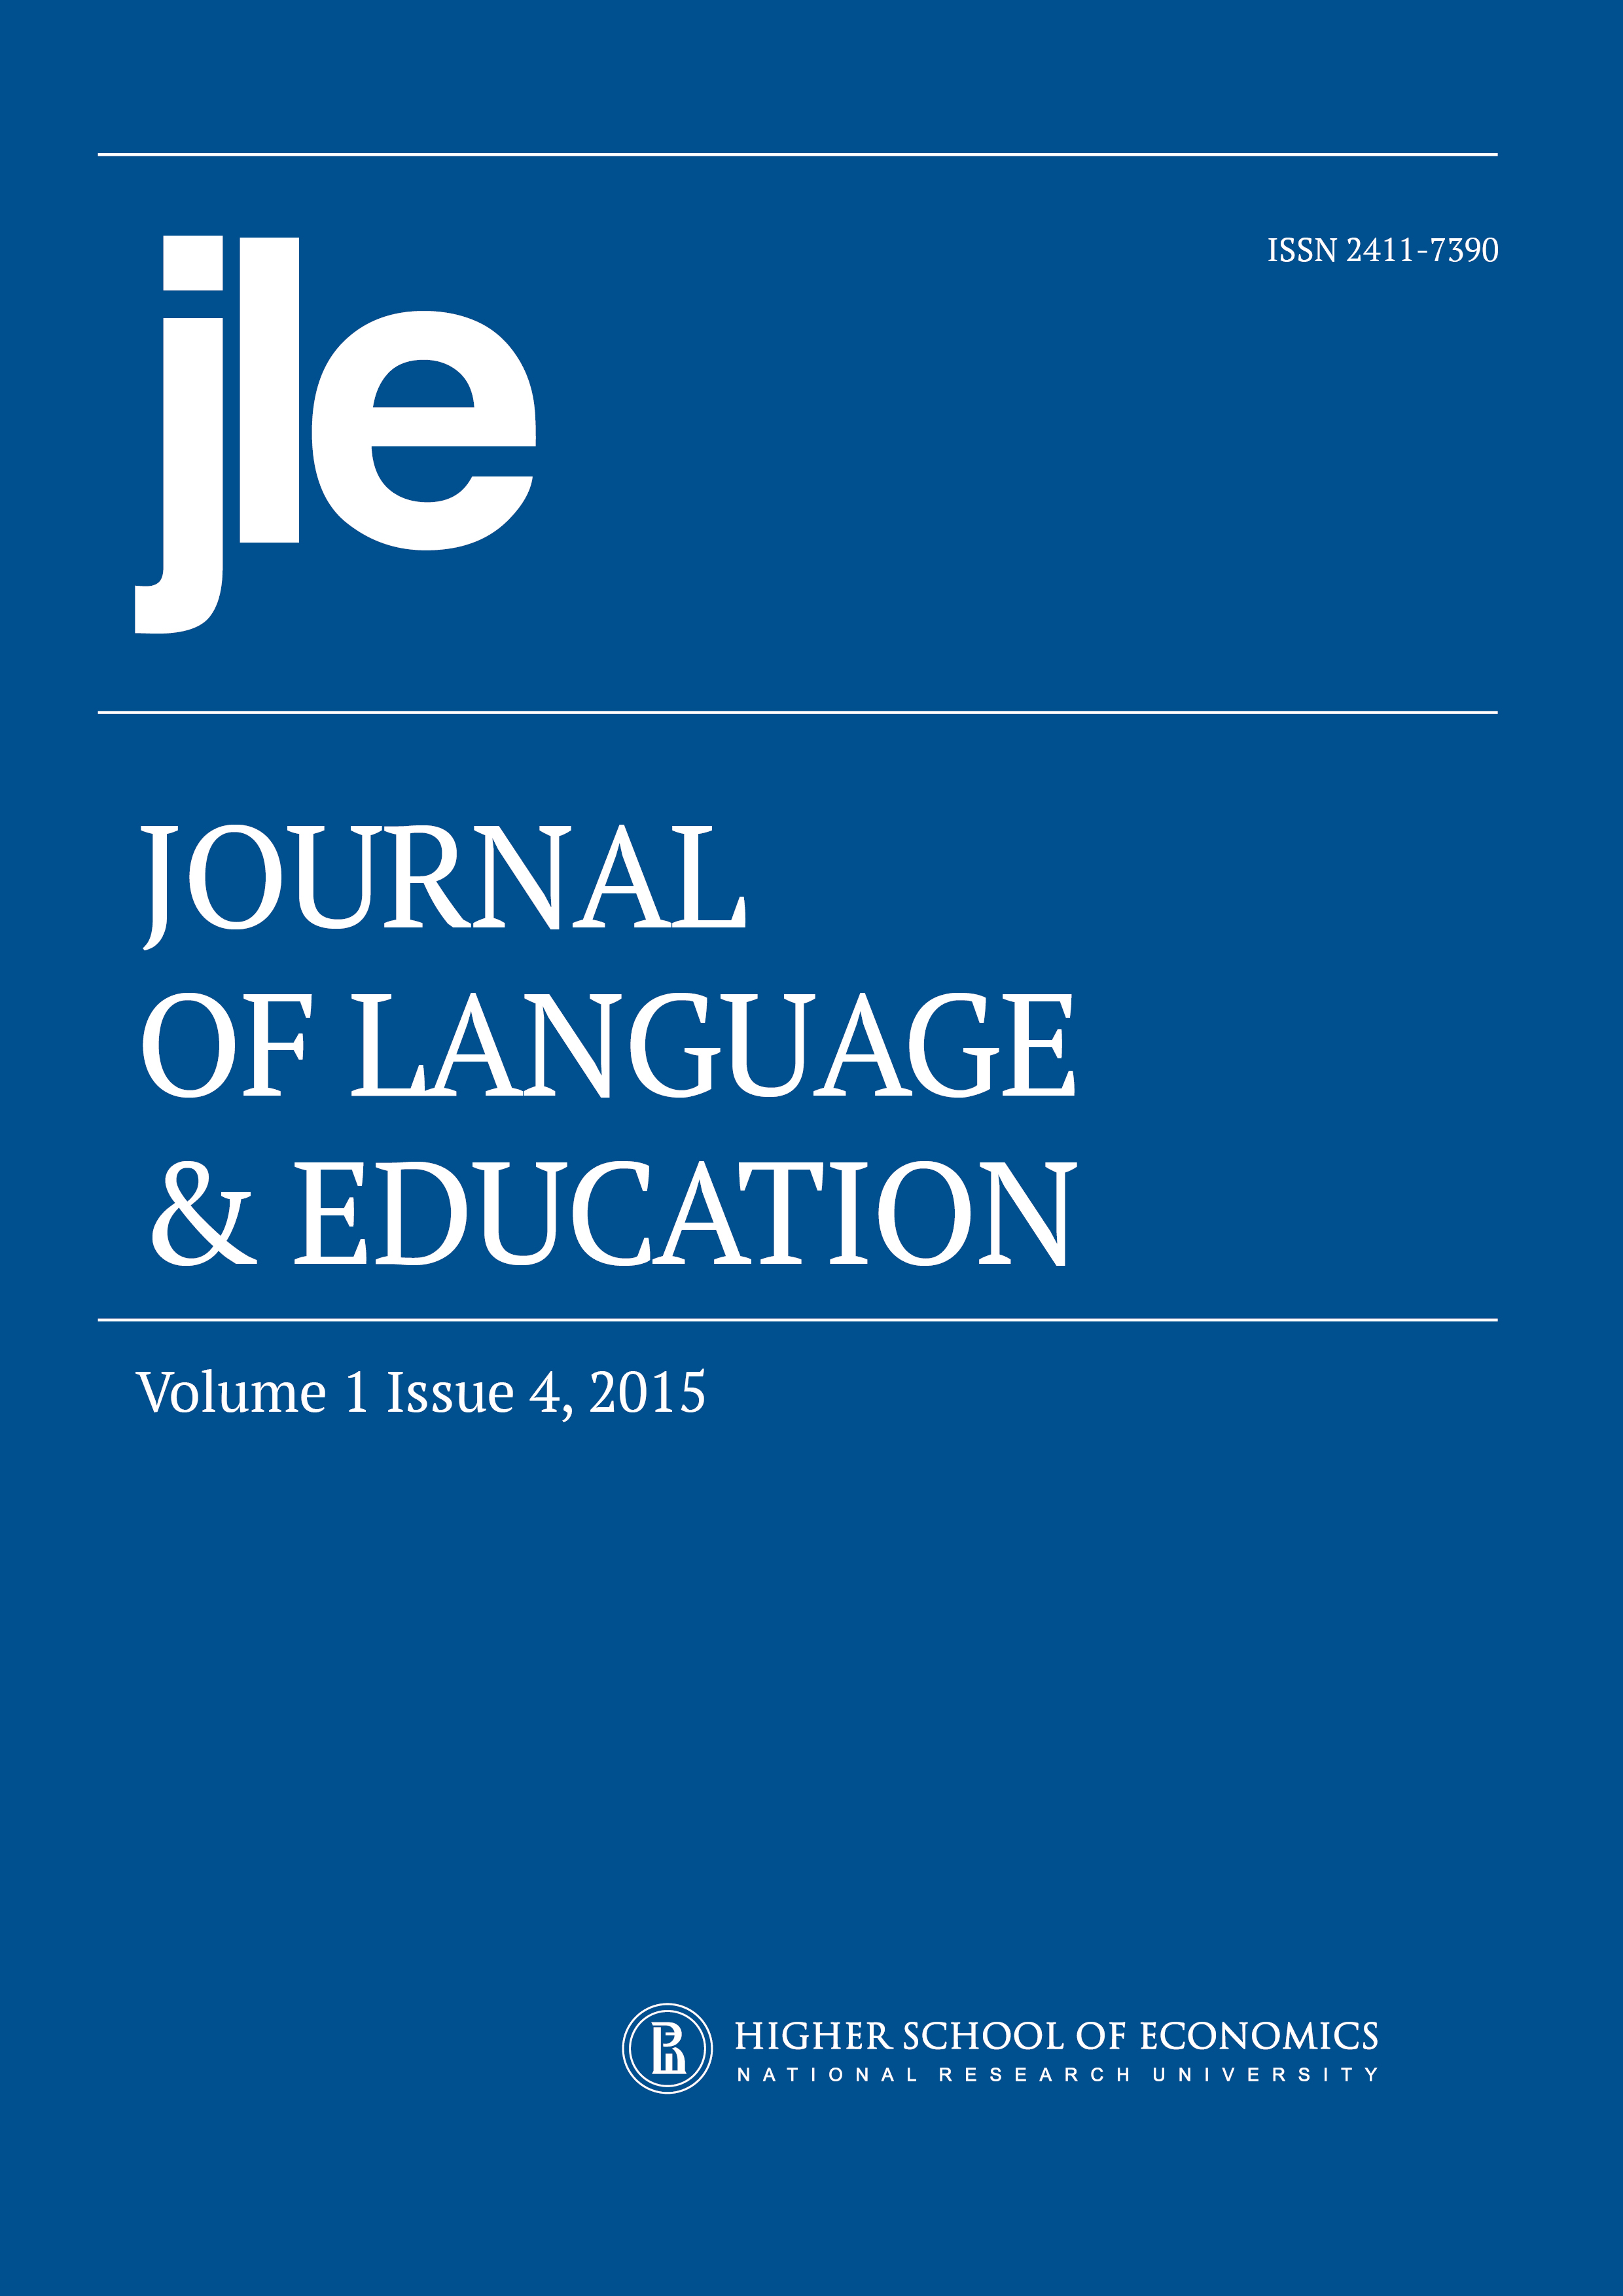 Volume 1 Issue 4, 2015